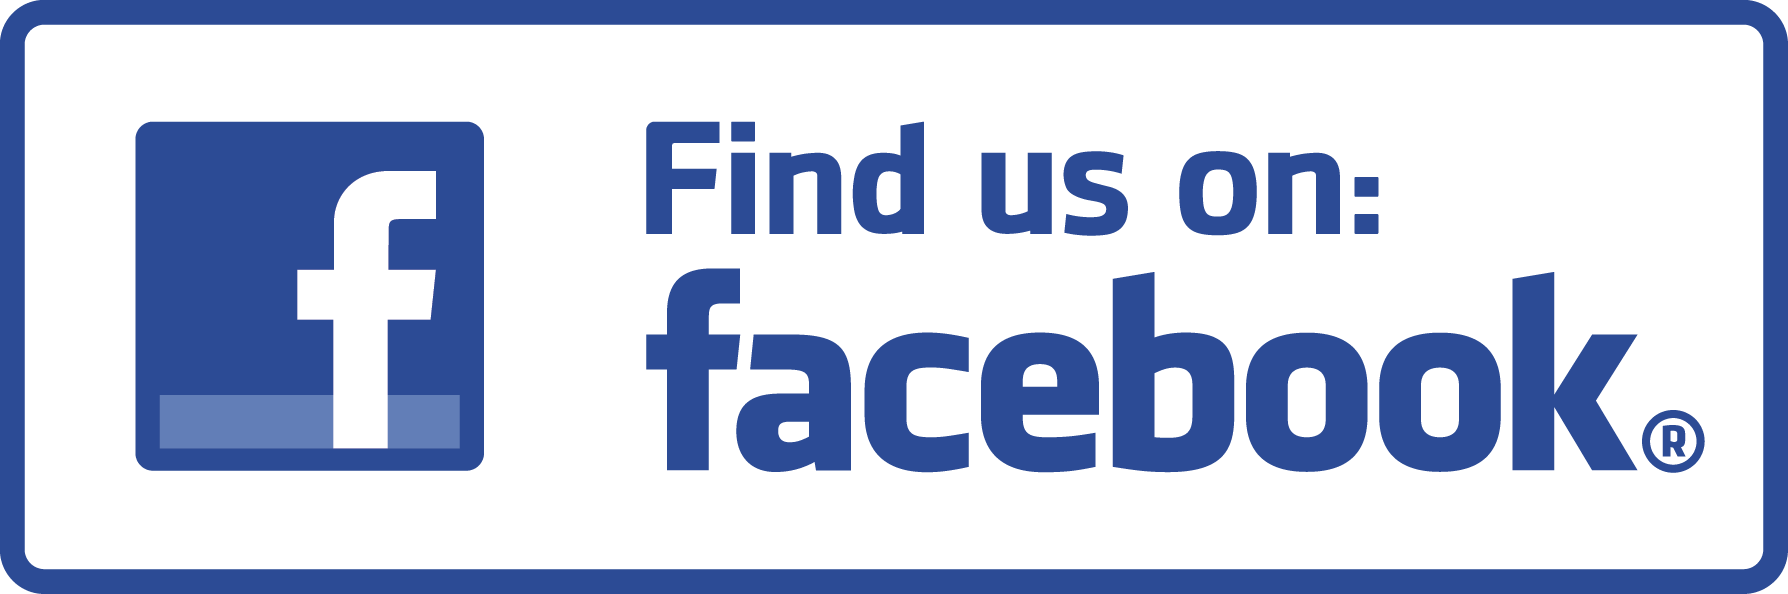 Facebook Logo Wallpaper Full HD1